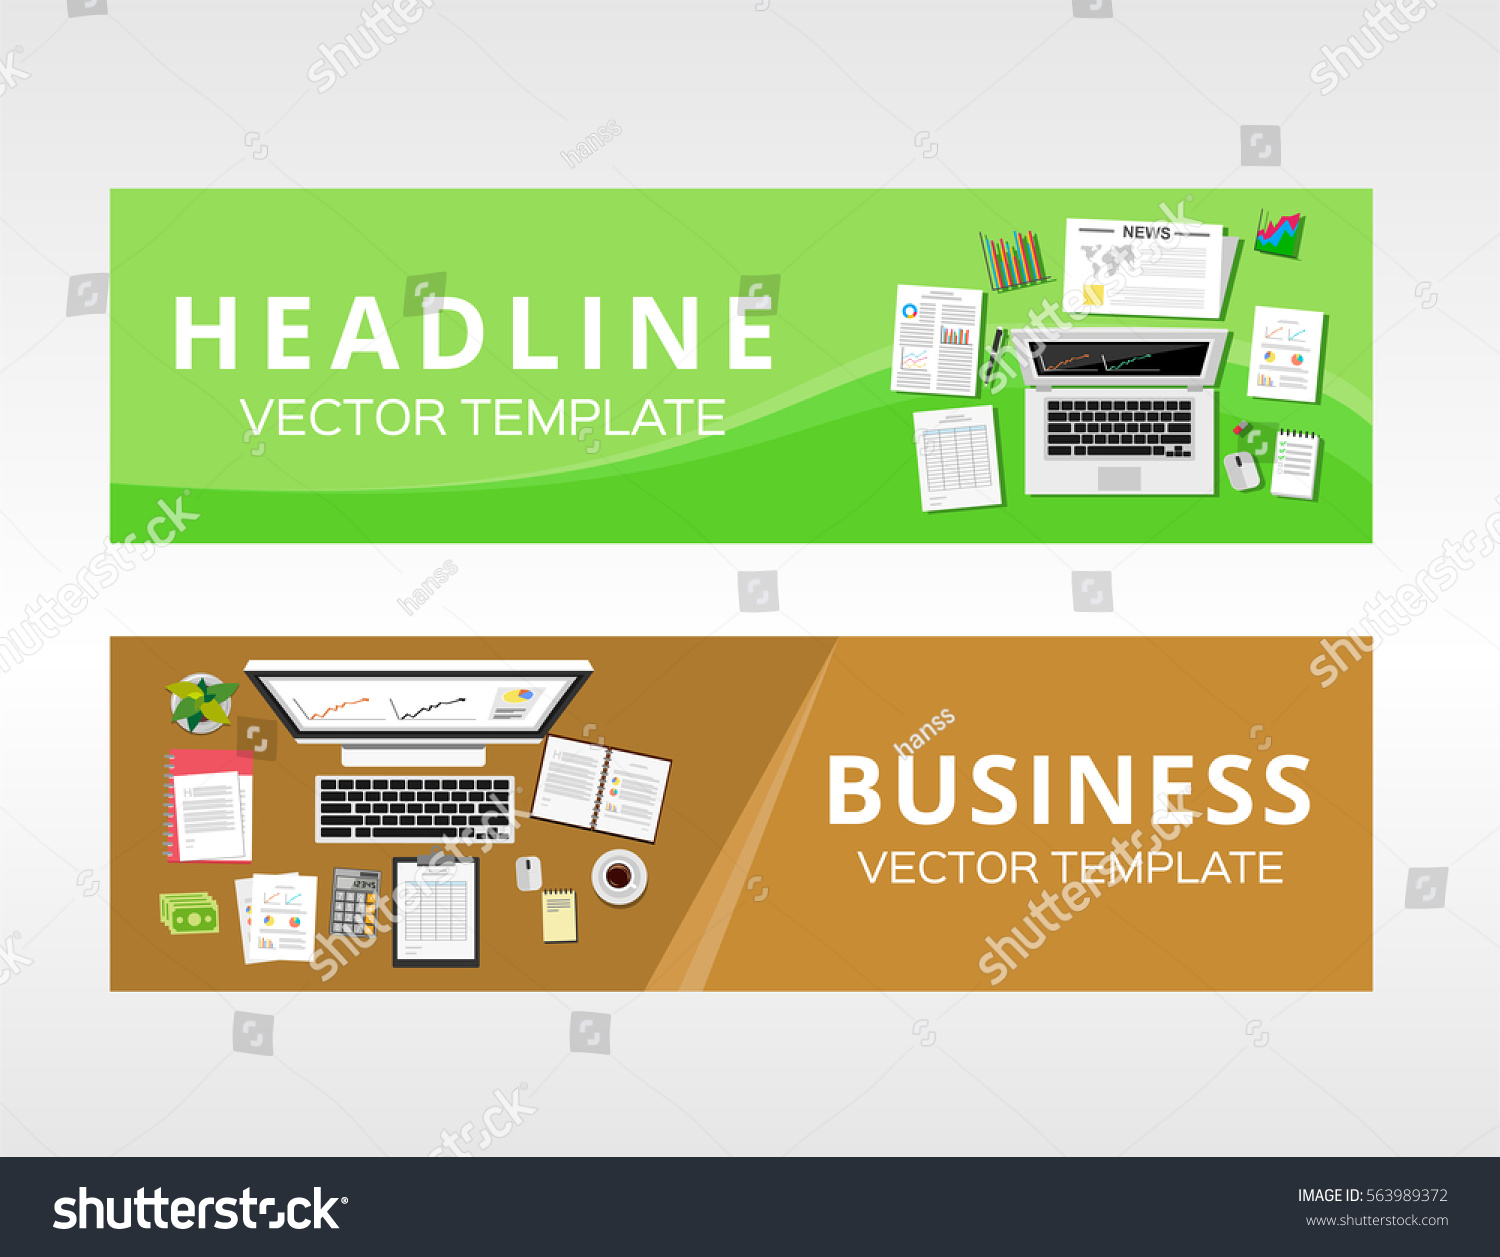 Business Solution Business Service Design Template Stock Vector ...